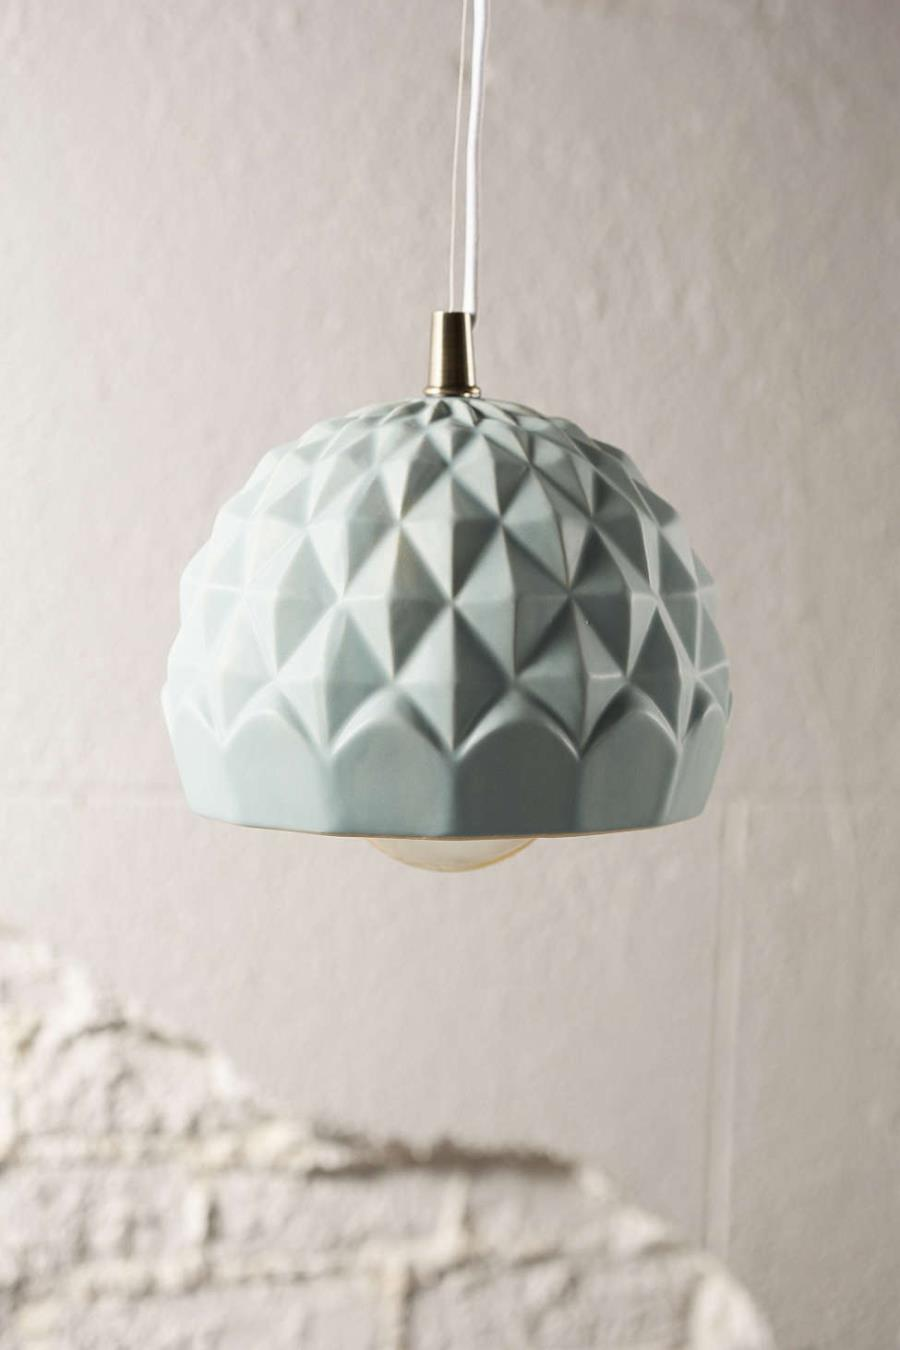 Mint green pendant light from Urban Outfitters